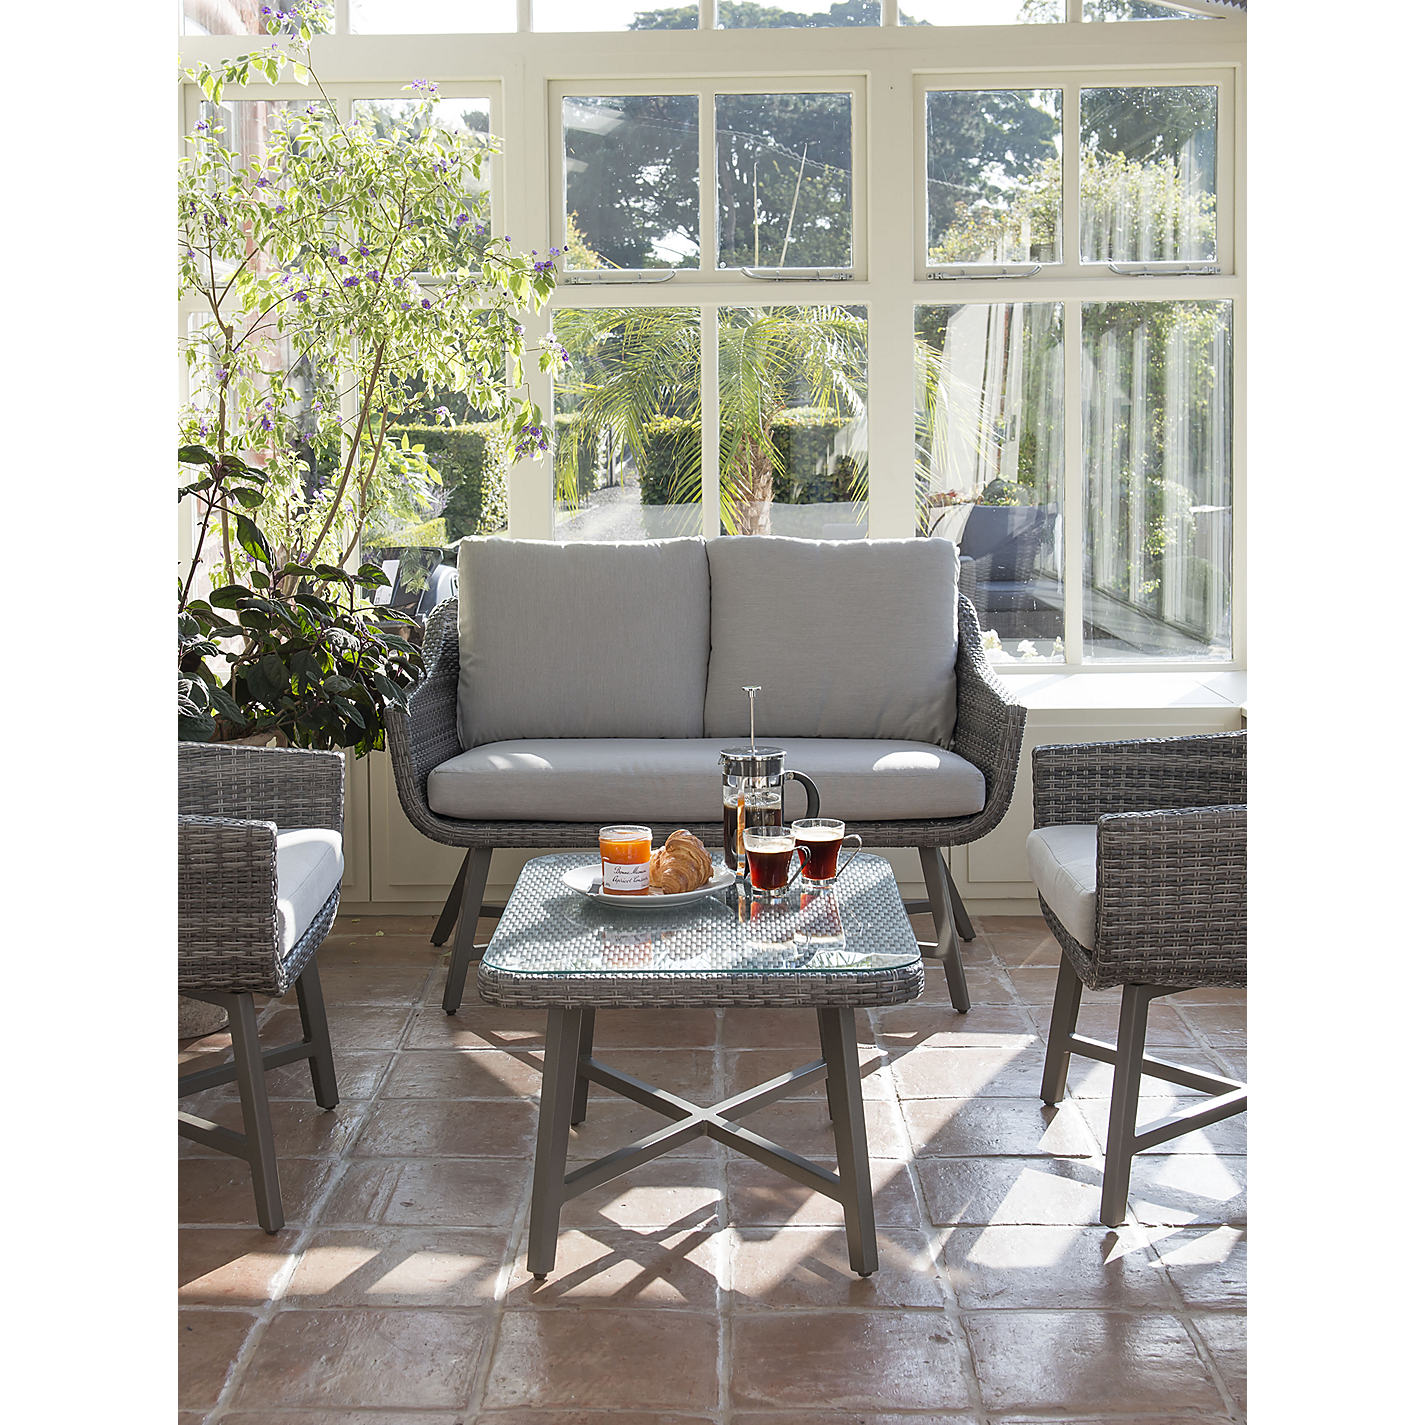 buy kettler lamode outdoor furniture range online at johnlewiscom - Garden Furniture The Range